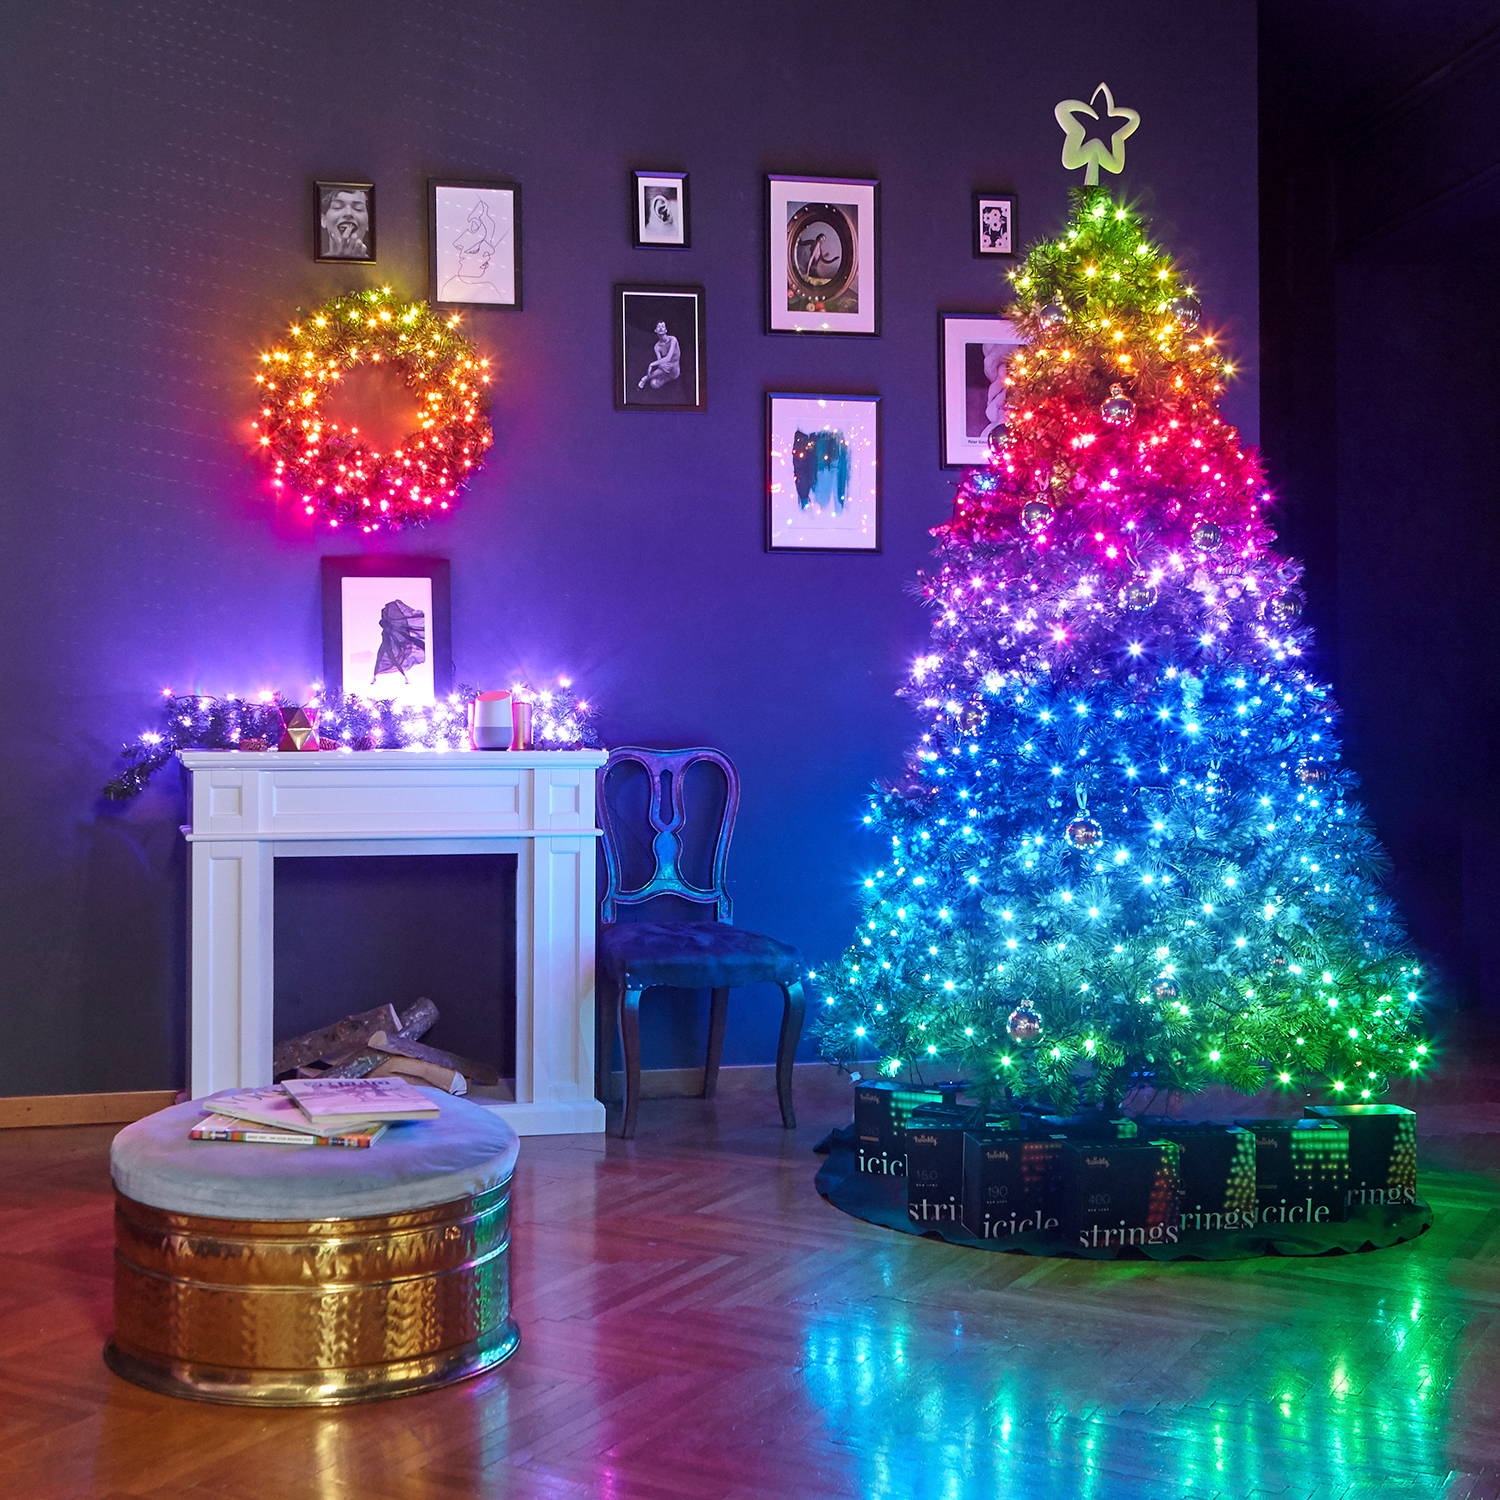 Multi coloured Twinkly lights adorning Christmas tree, wreath and garland in living room